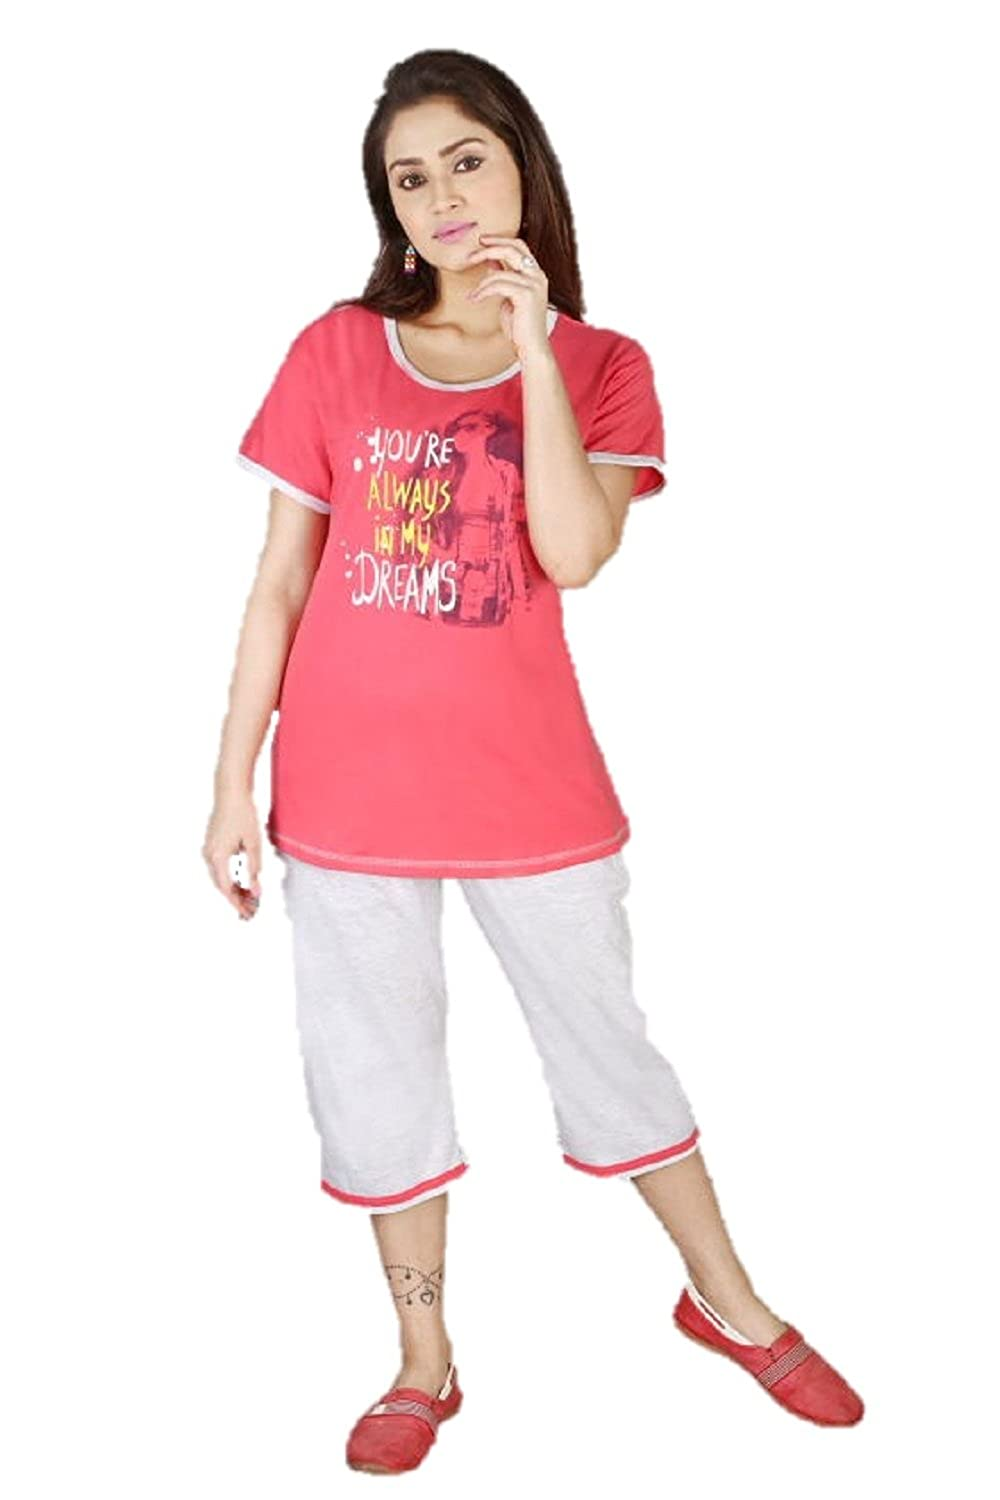 f7a8733e8c8e MUSE Nightwear for Women - Night Suit - Top   Capri Set - Cotton Sinker  Material - Half Sleeves - Sizes Available - L- Lounge Wear Active Wear Daily  Wear ...